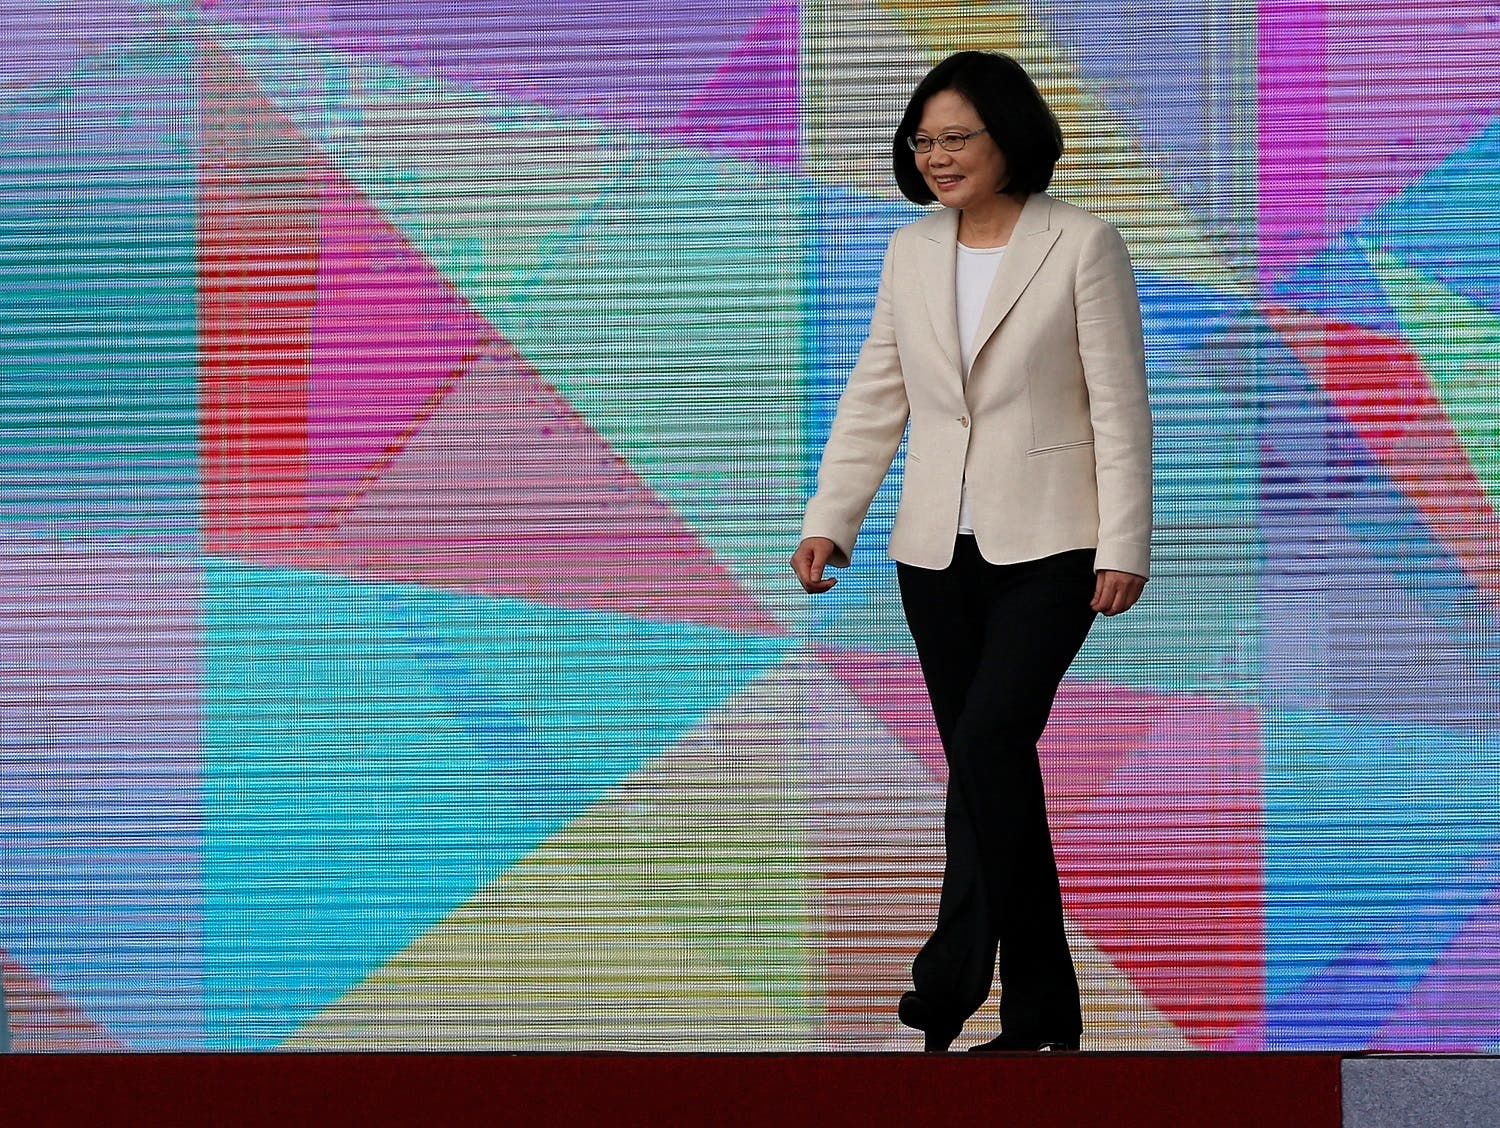 Taiwan's President Tsai Ing-wen walks on the podium before addressing during an inauguration ceremony in Taipei. (Reuters)